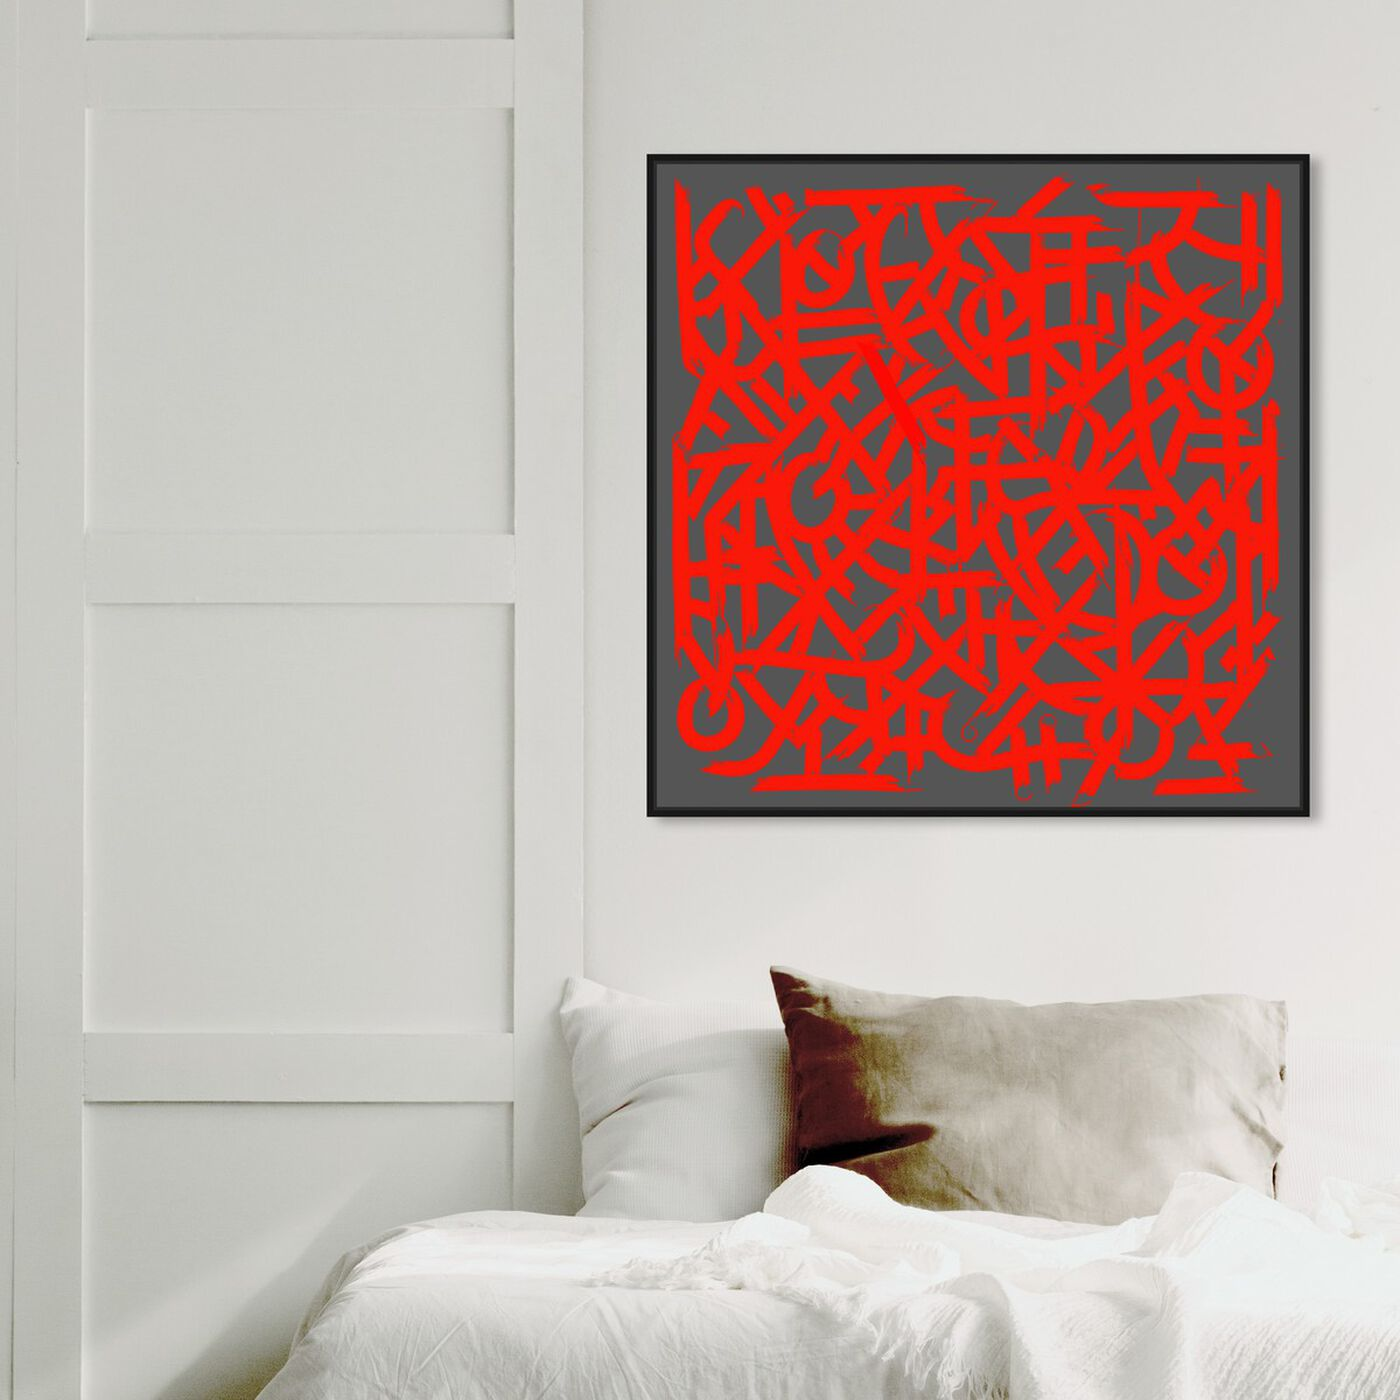 Hanging view of Matt Bentley Hoover - Red featuring abstract and patterns art.